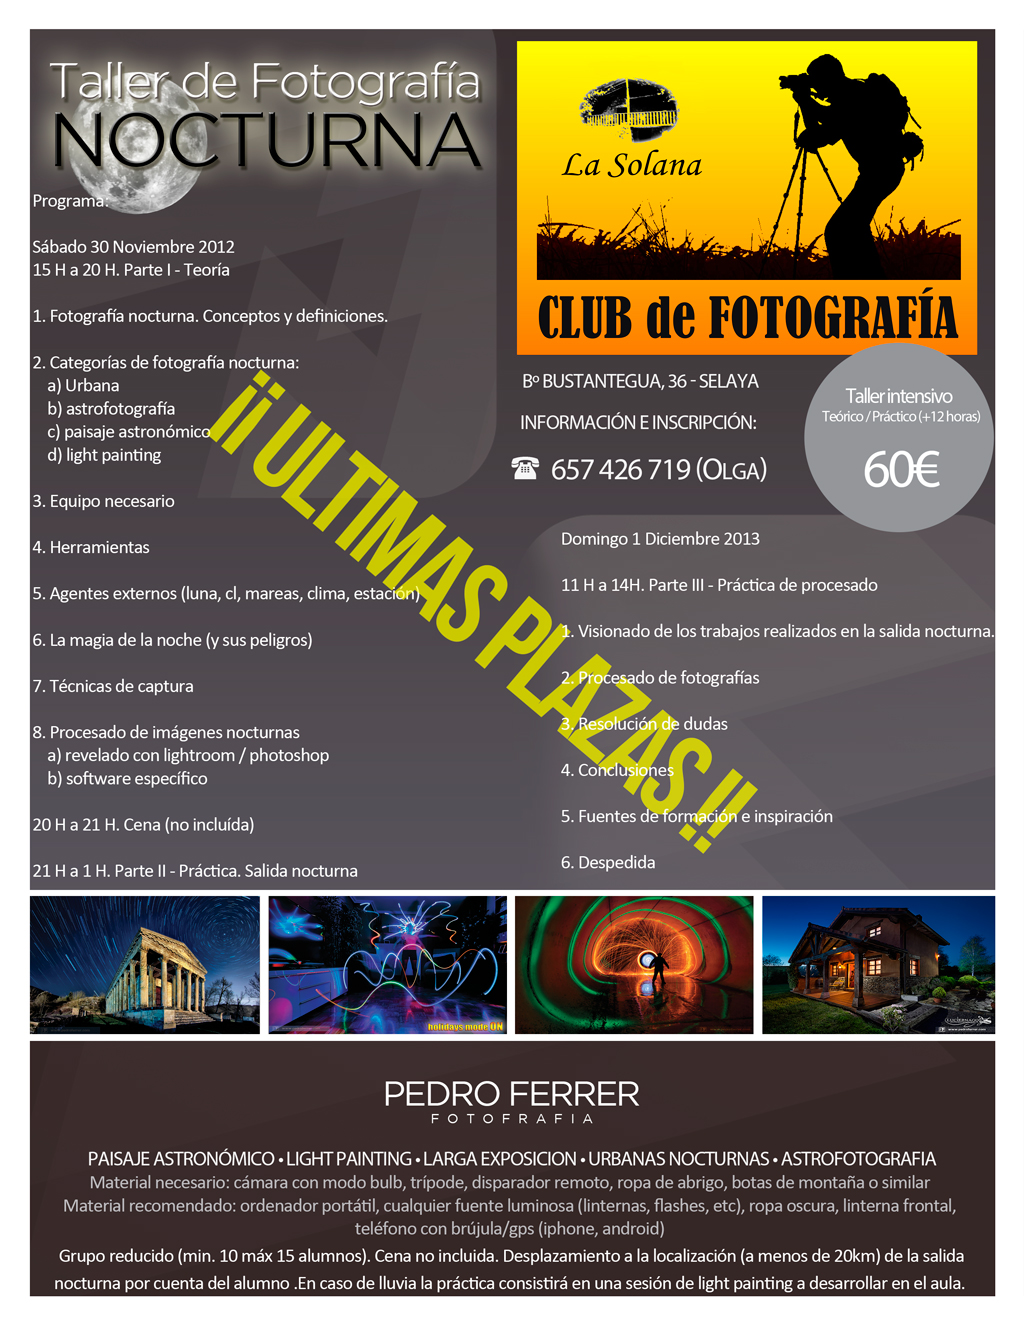 Taller-nocturnas-ultimas-plazas